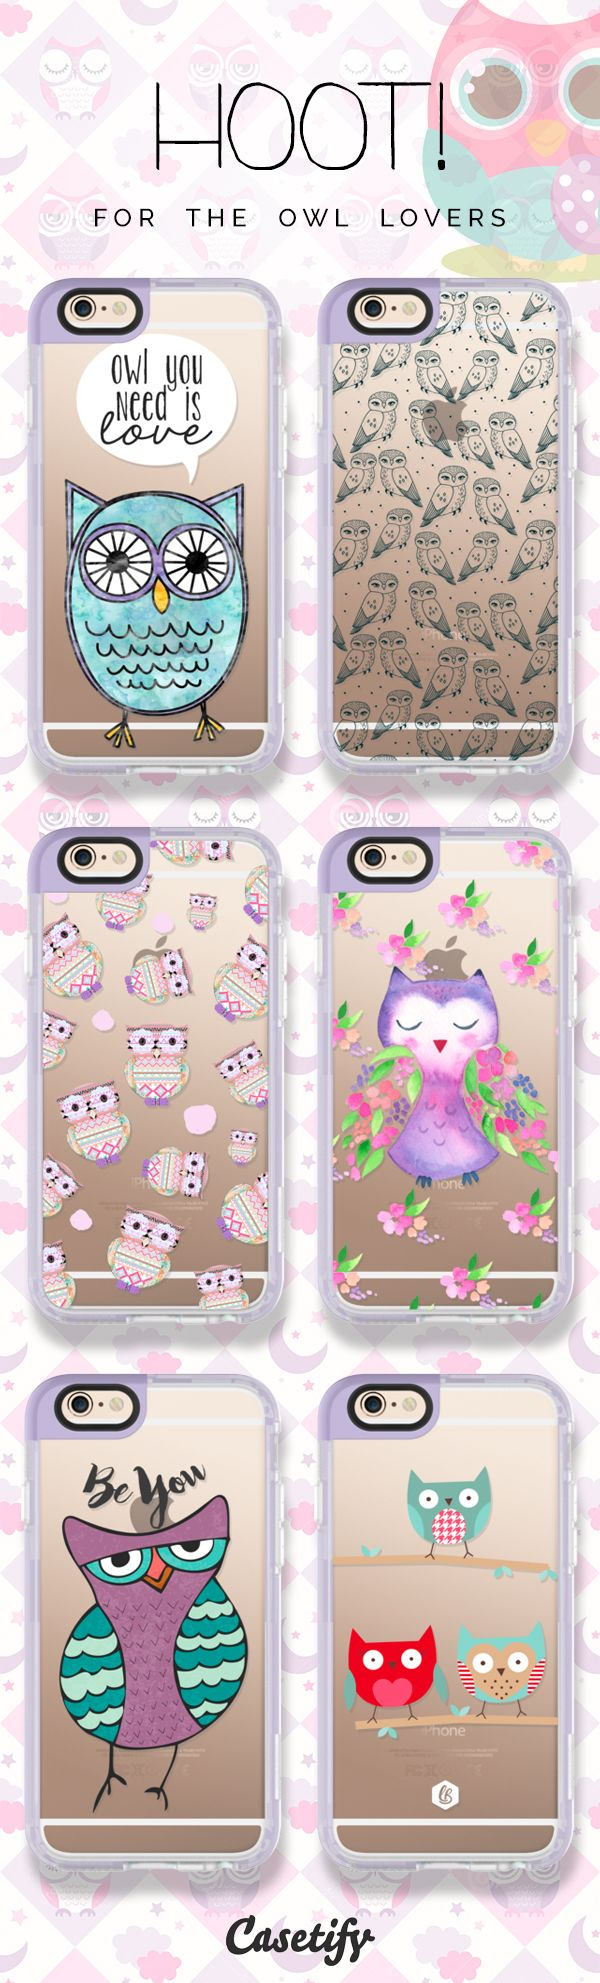 Keep calm and hoot on! Shop these cases featuring owls here: https://www.casetify.com/artworks/kWkXziC5SR     @casetify